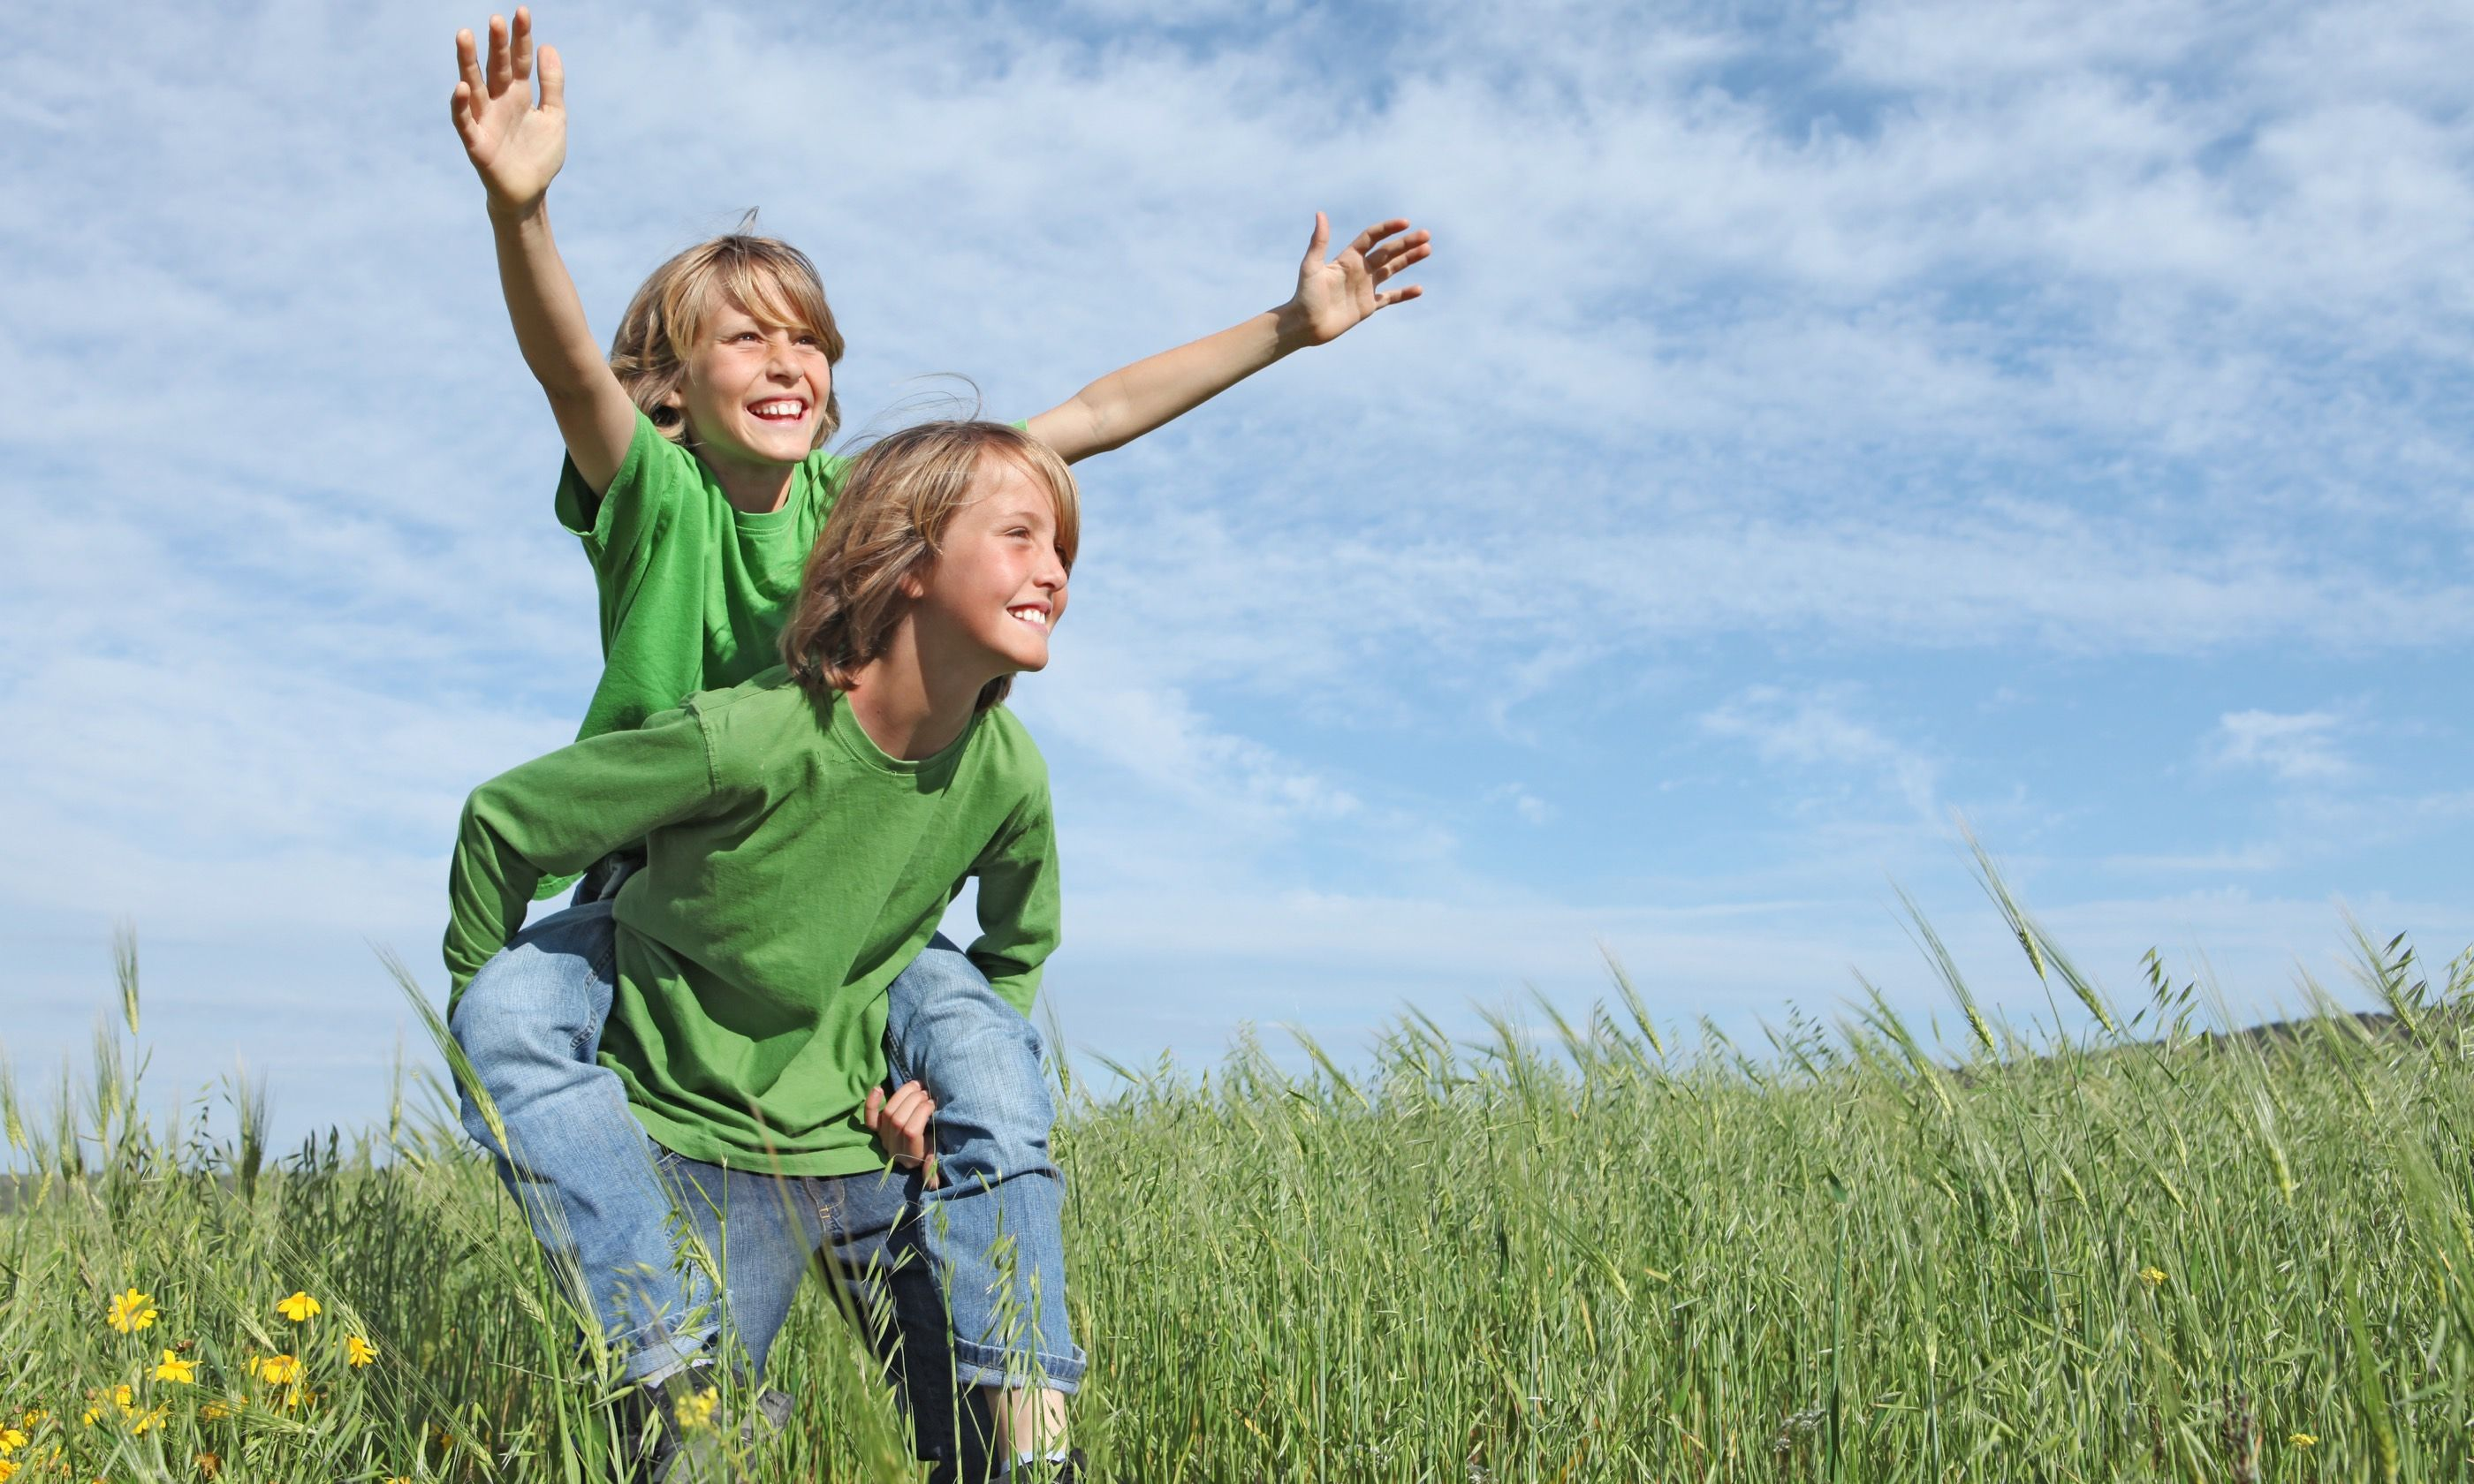 Kids living in the moment (Dreamstime)